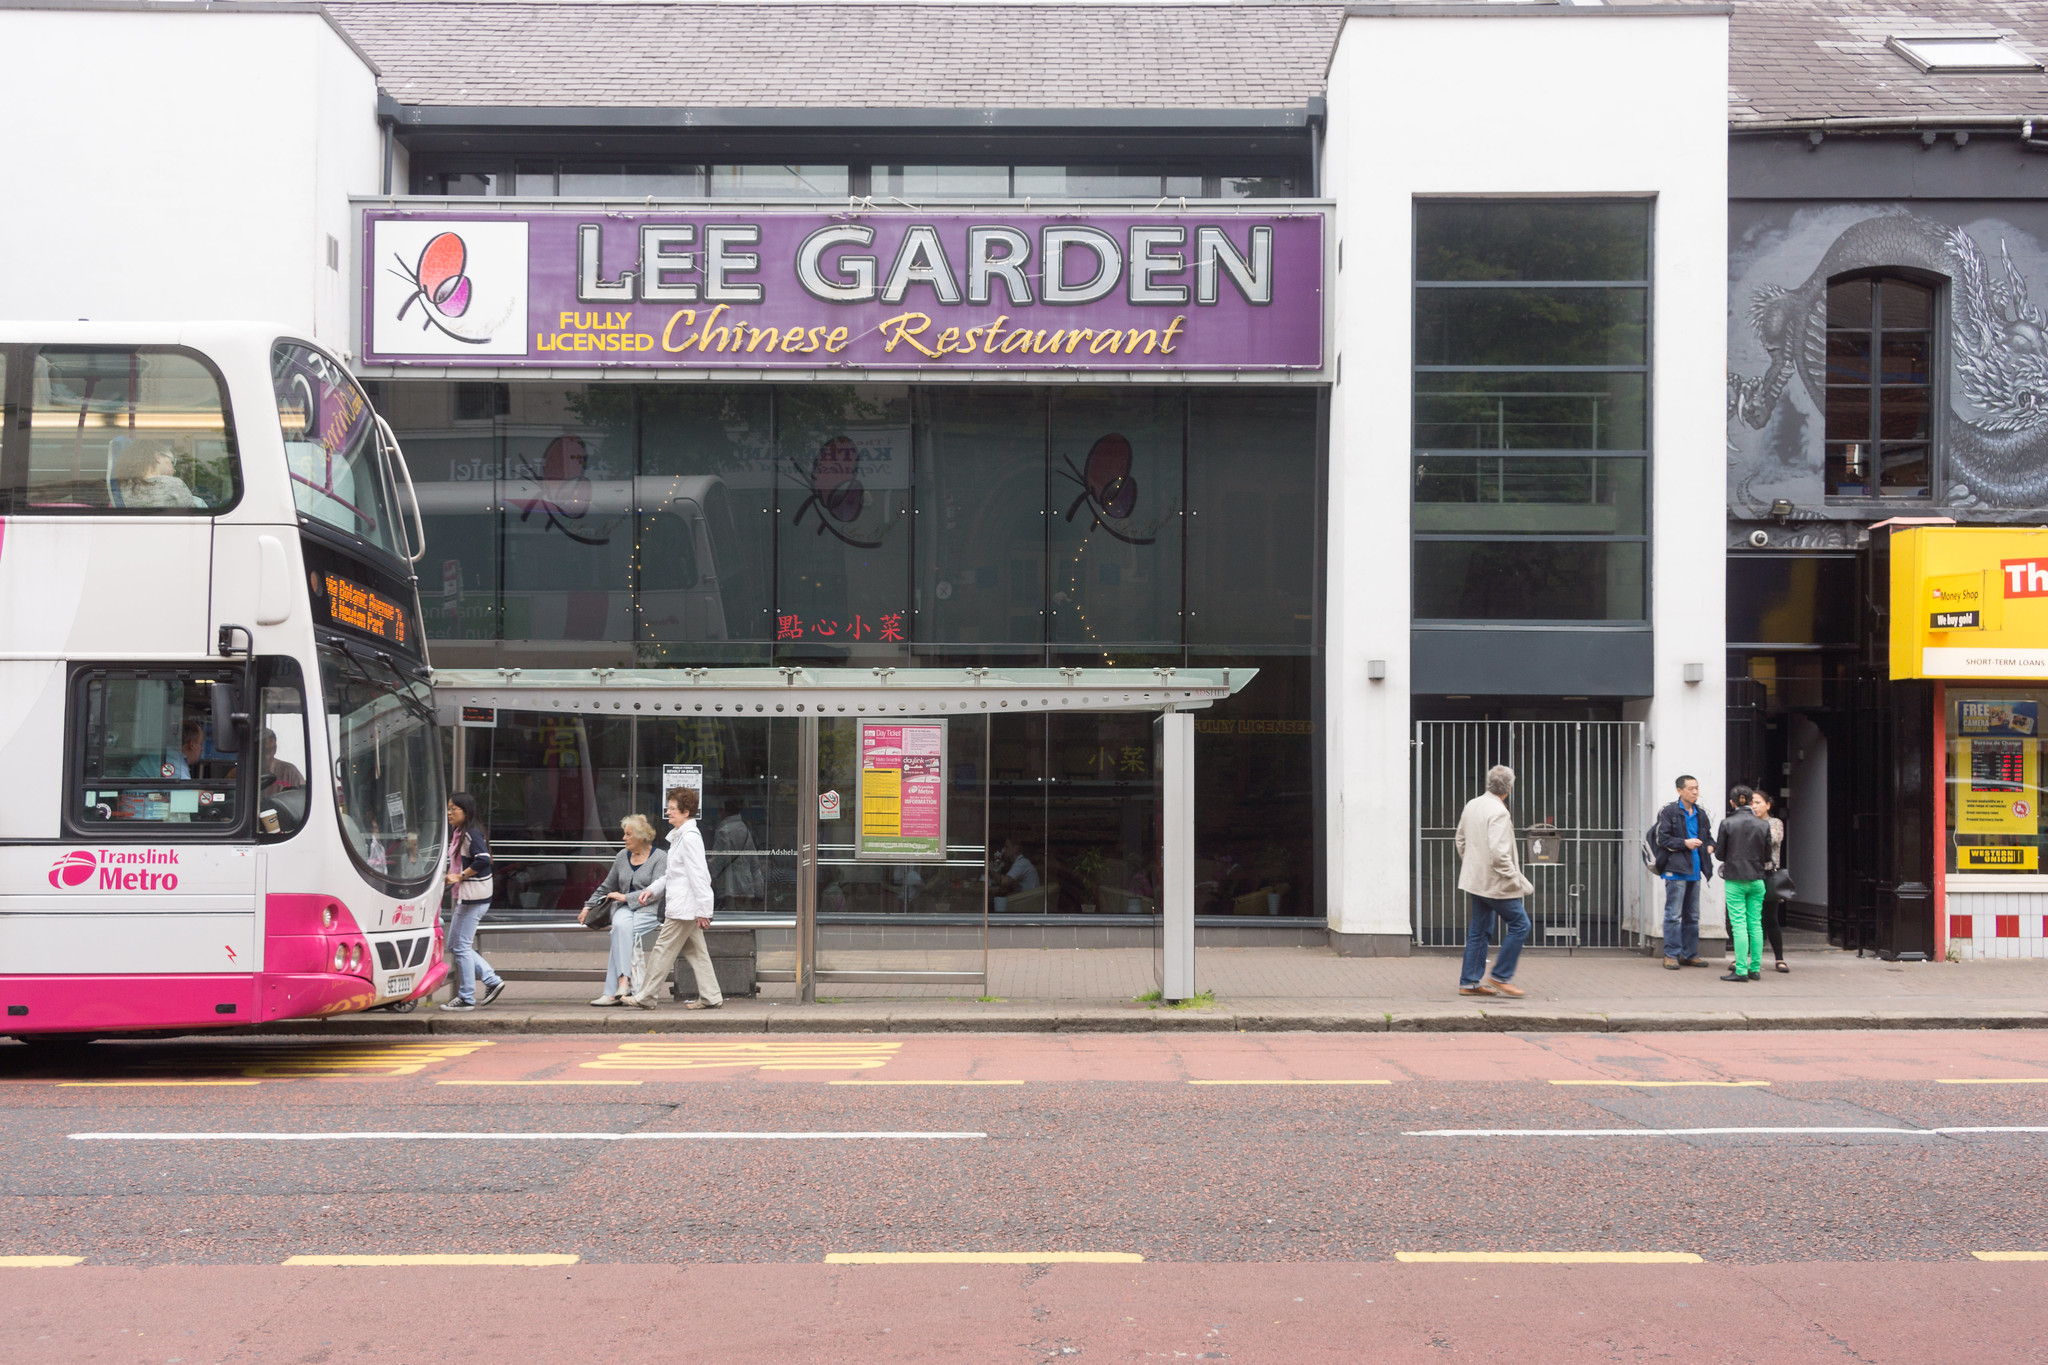 Lee Garden Fully Licenced Chinese Restaurant In Belfast Flickr Photo Sharing